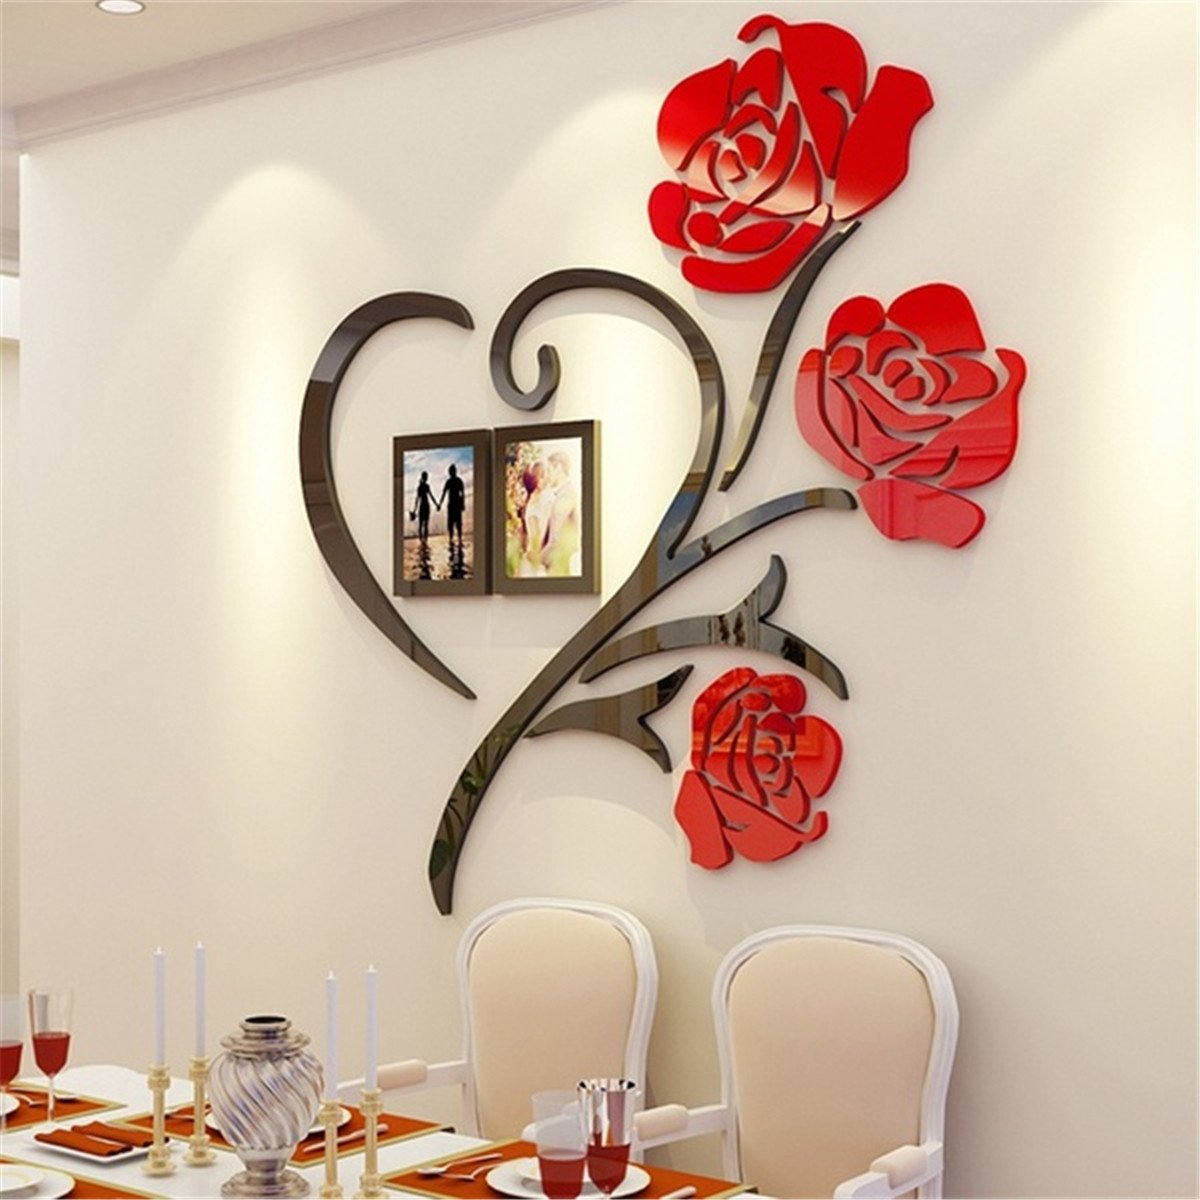 Rose Decorations for Bedroom Awesome Details About 3d Acrylic Wall Sticker Love Rose Frame Art Decor Living Room Home Decal